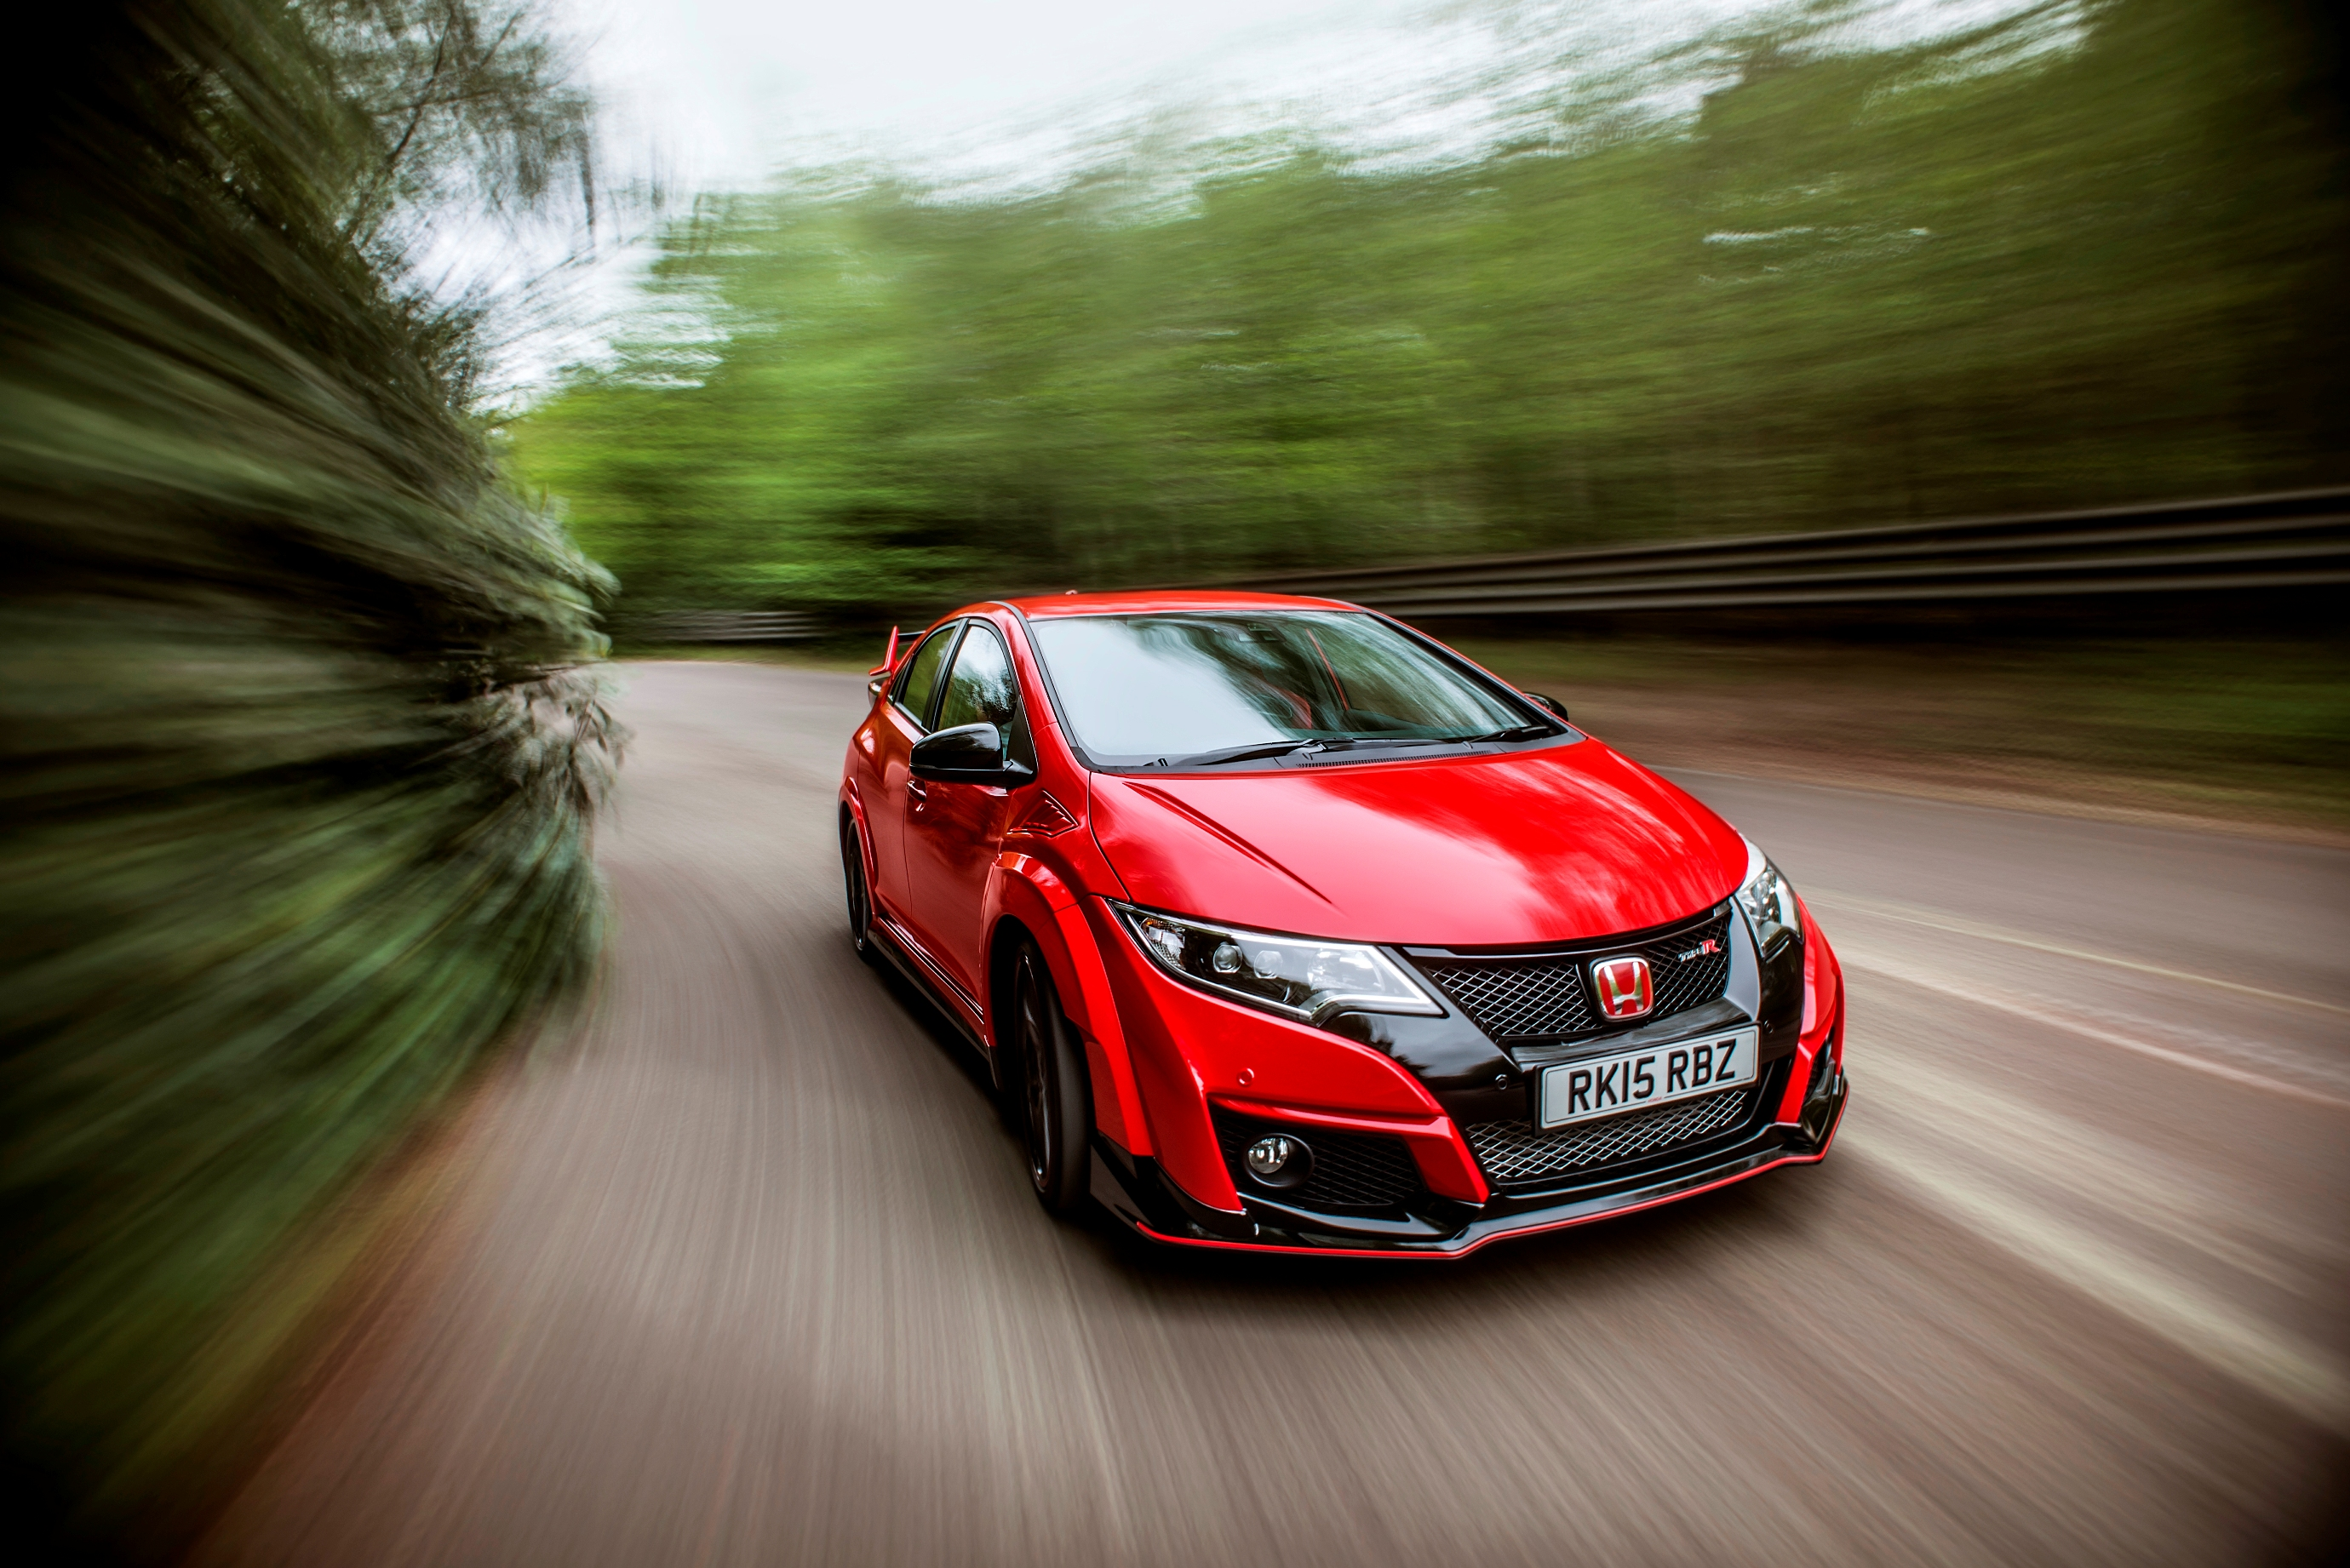 Delightful Civic Type R Red Rhd (14)